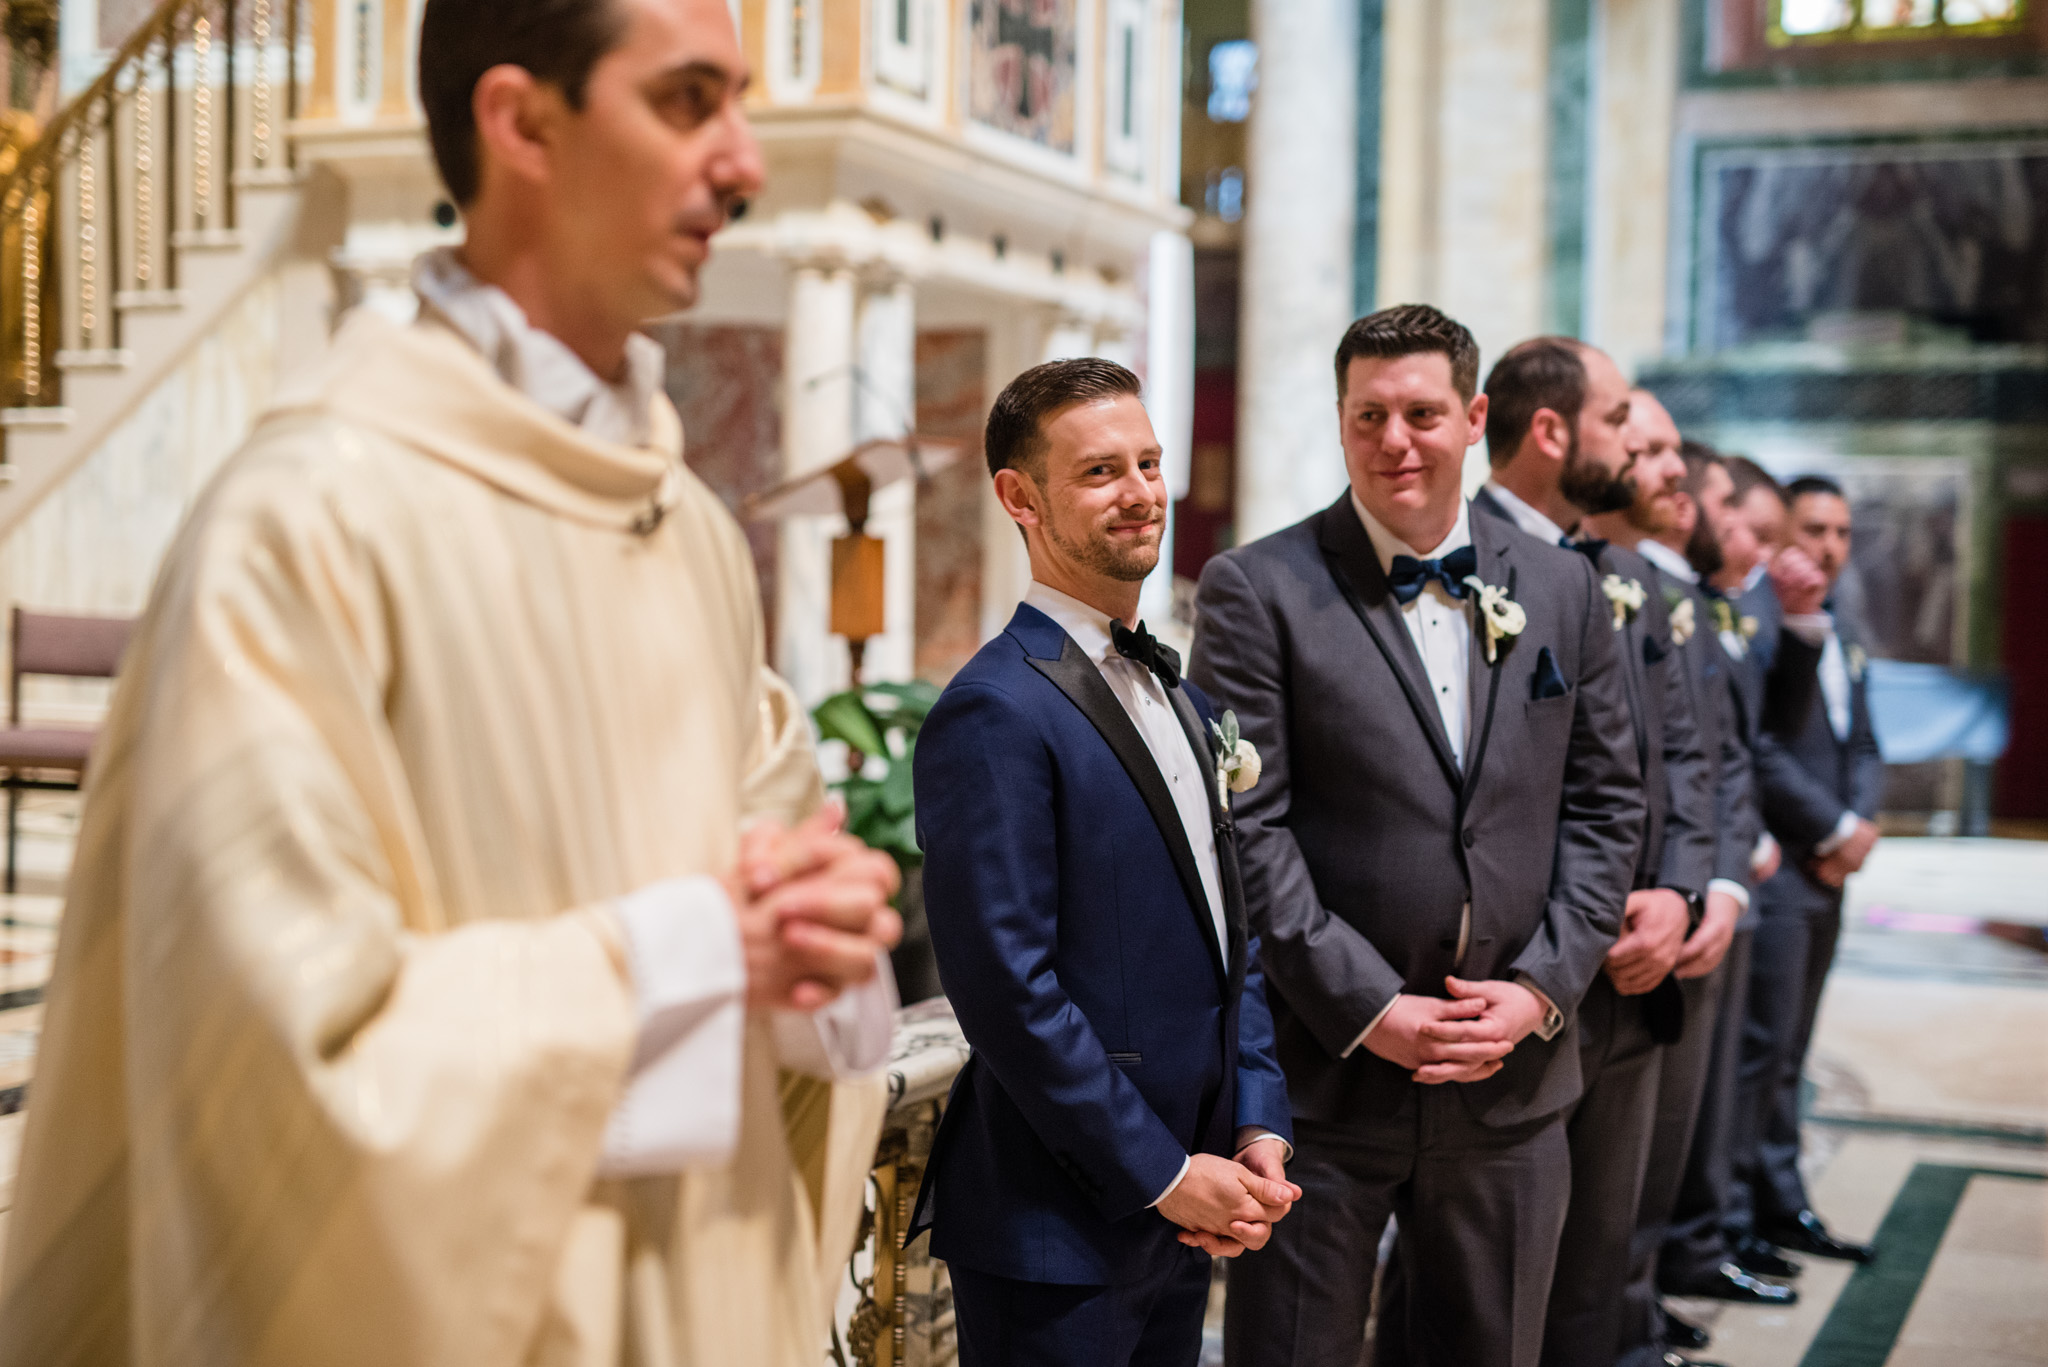 Cathedral of St. Matthew the Apostle wedding (1).jpg